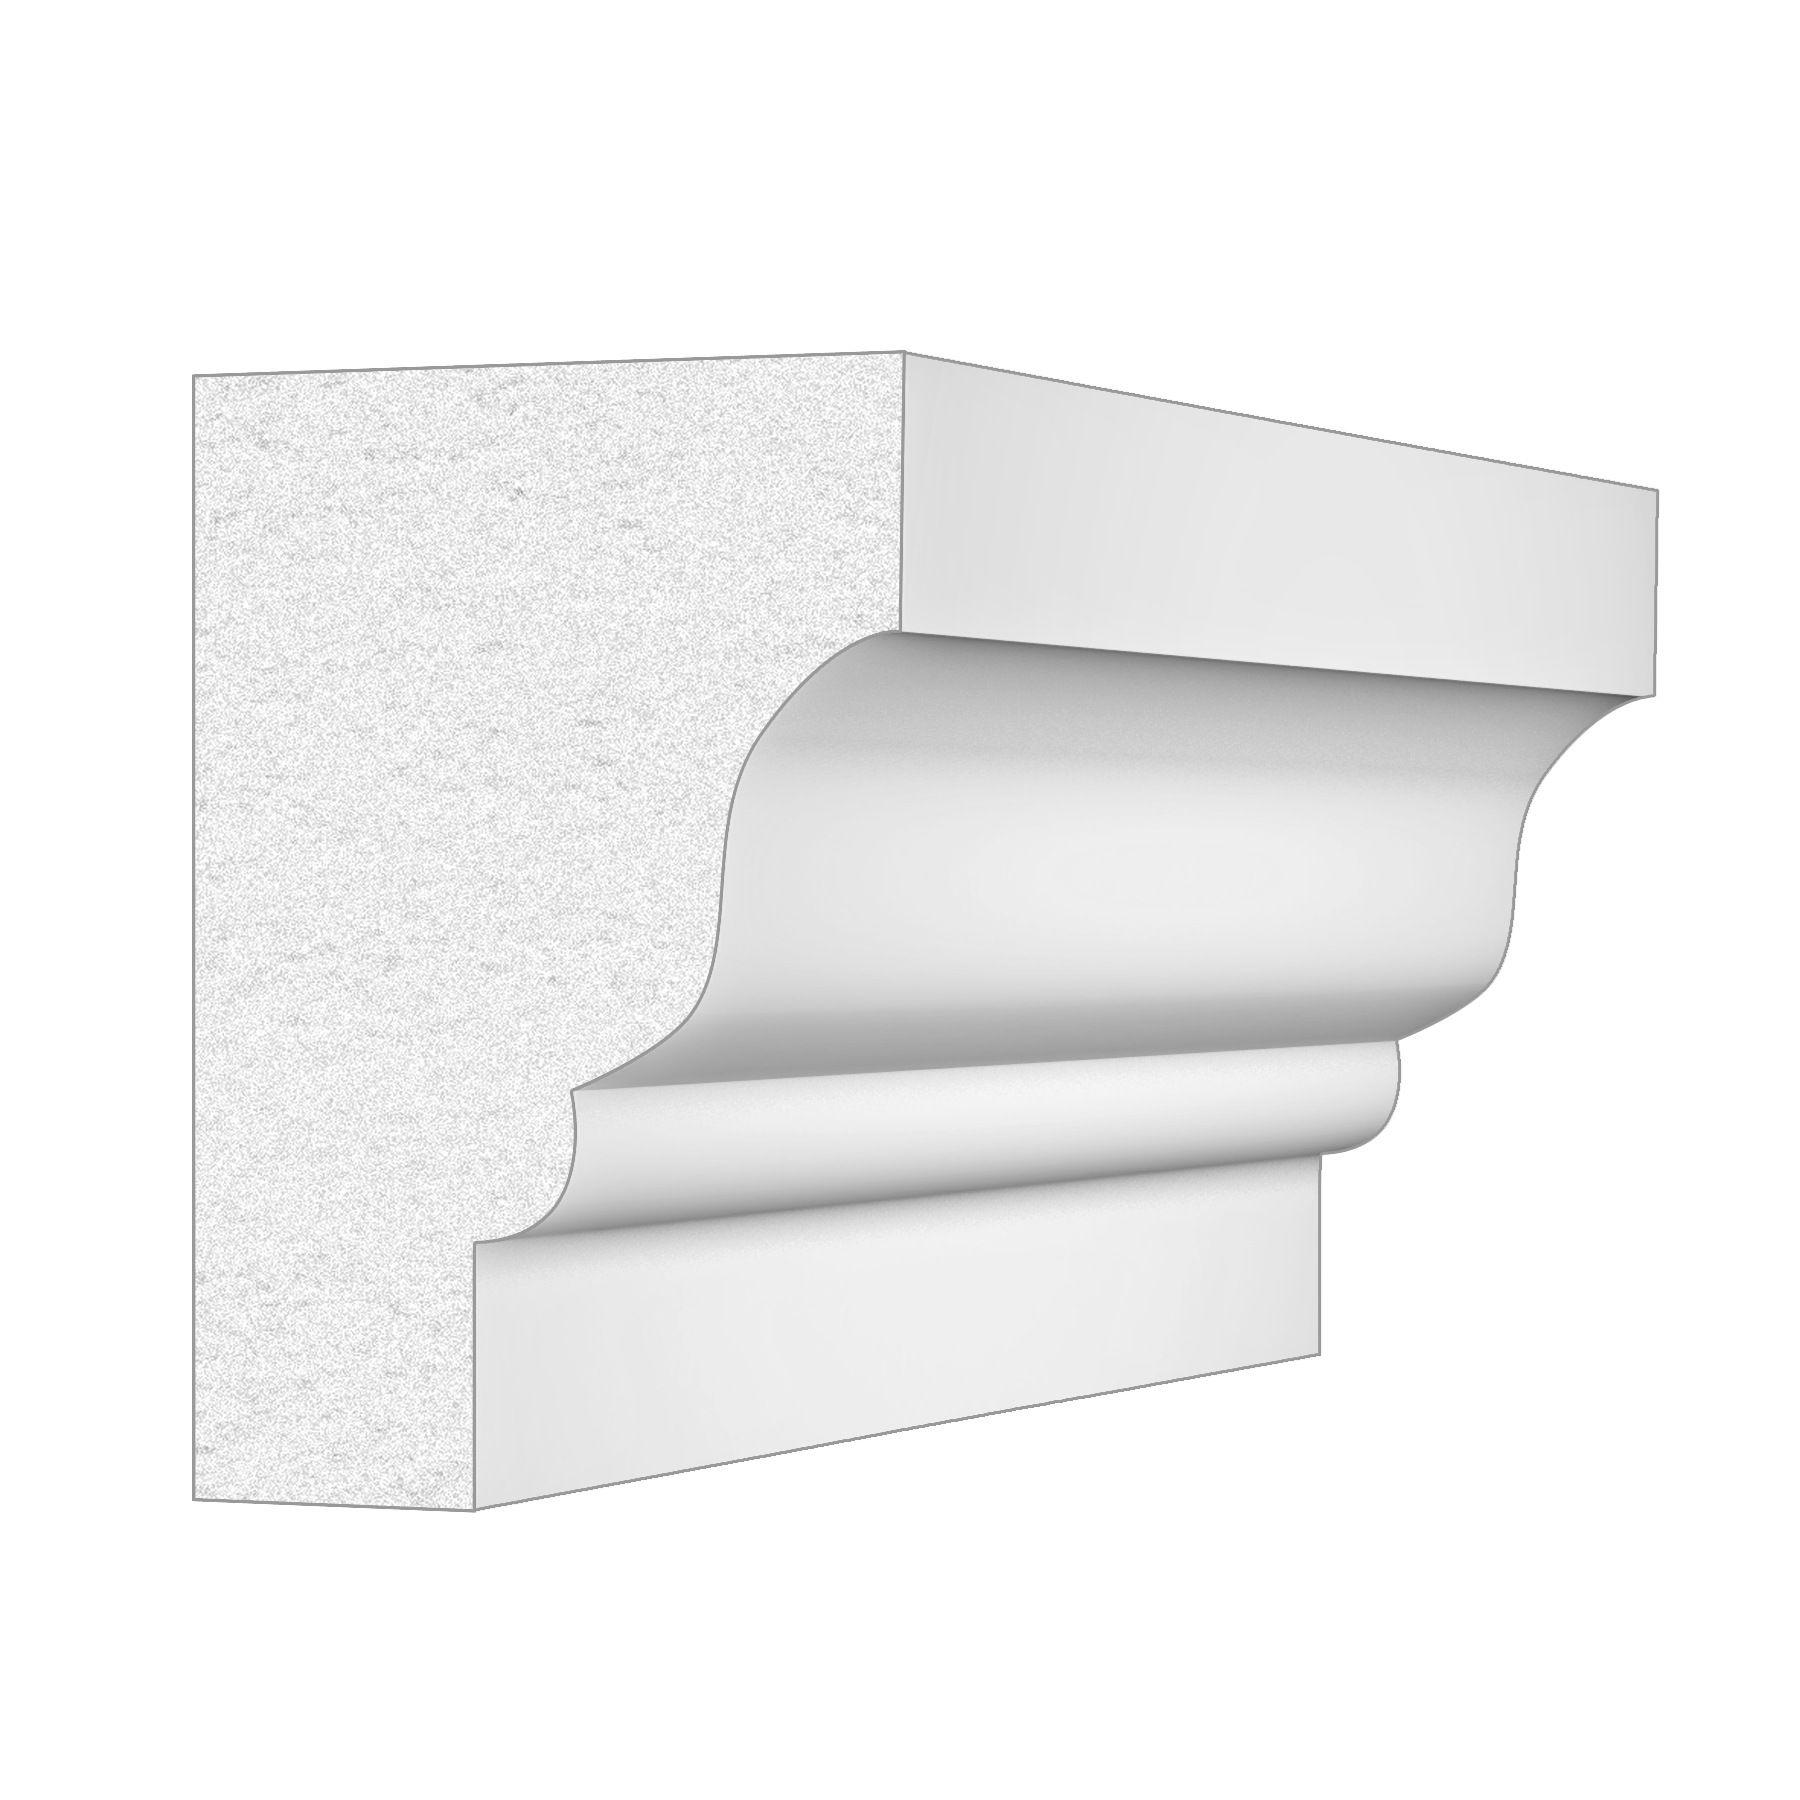 PALIGHT WHITE PVC RAMS CROWN MOULDING